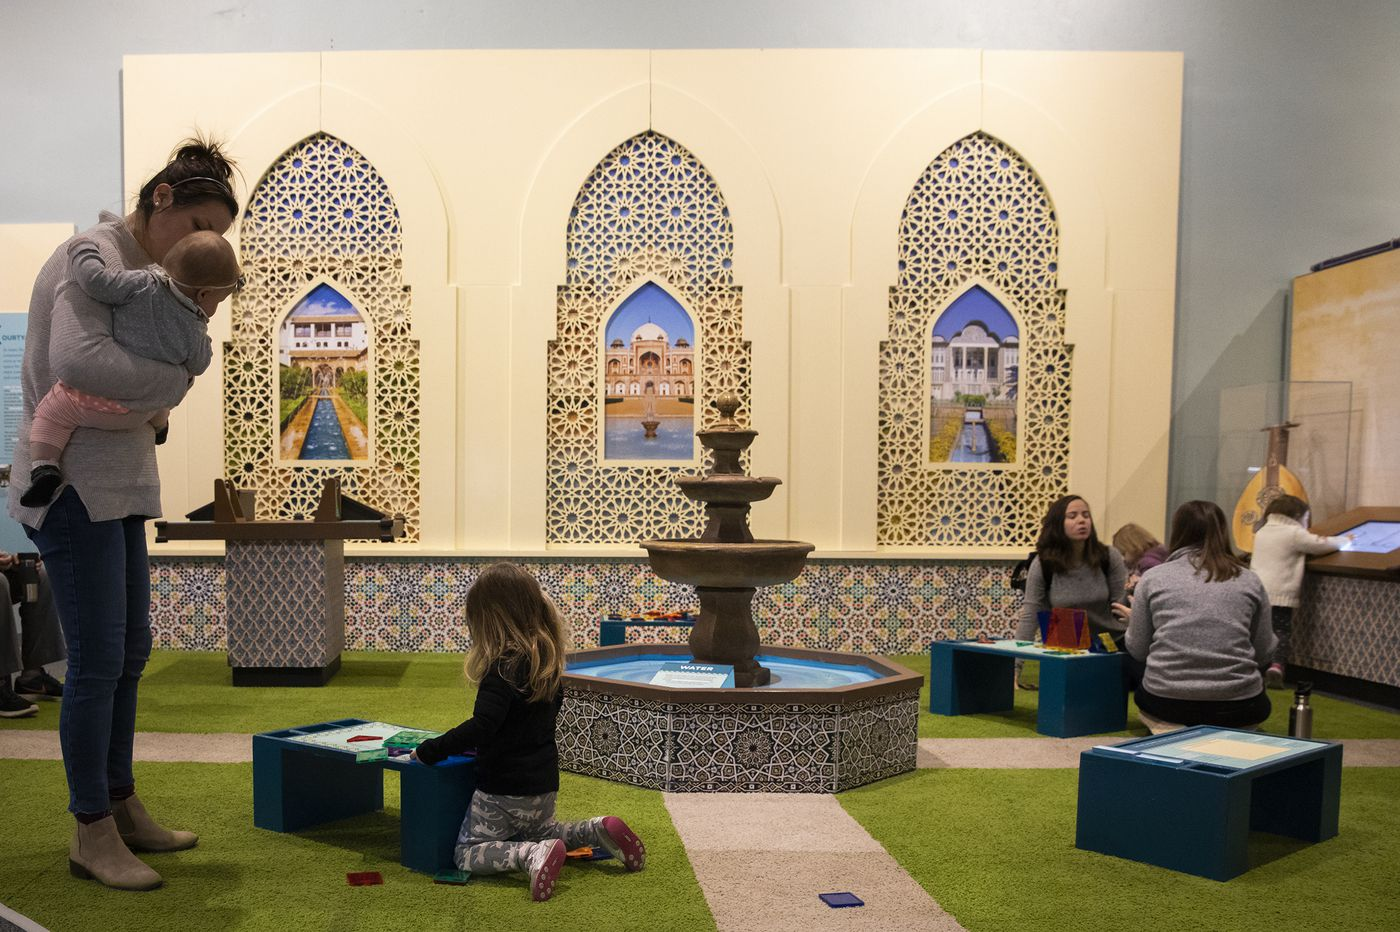 Please Touch Museum stages groundbreaking Muslim exhibit with a place to pray